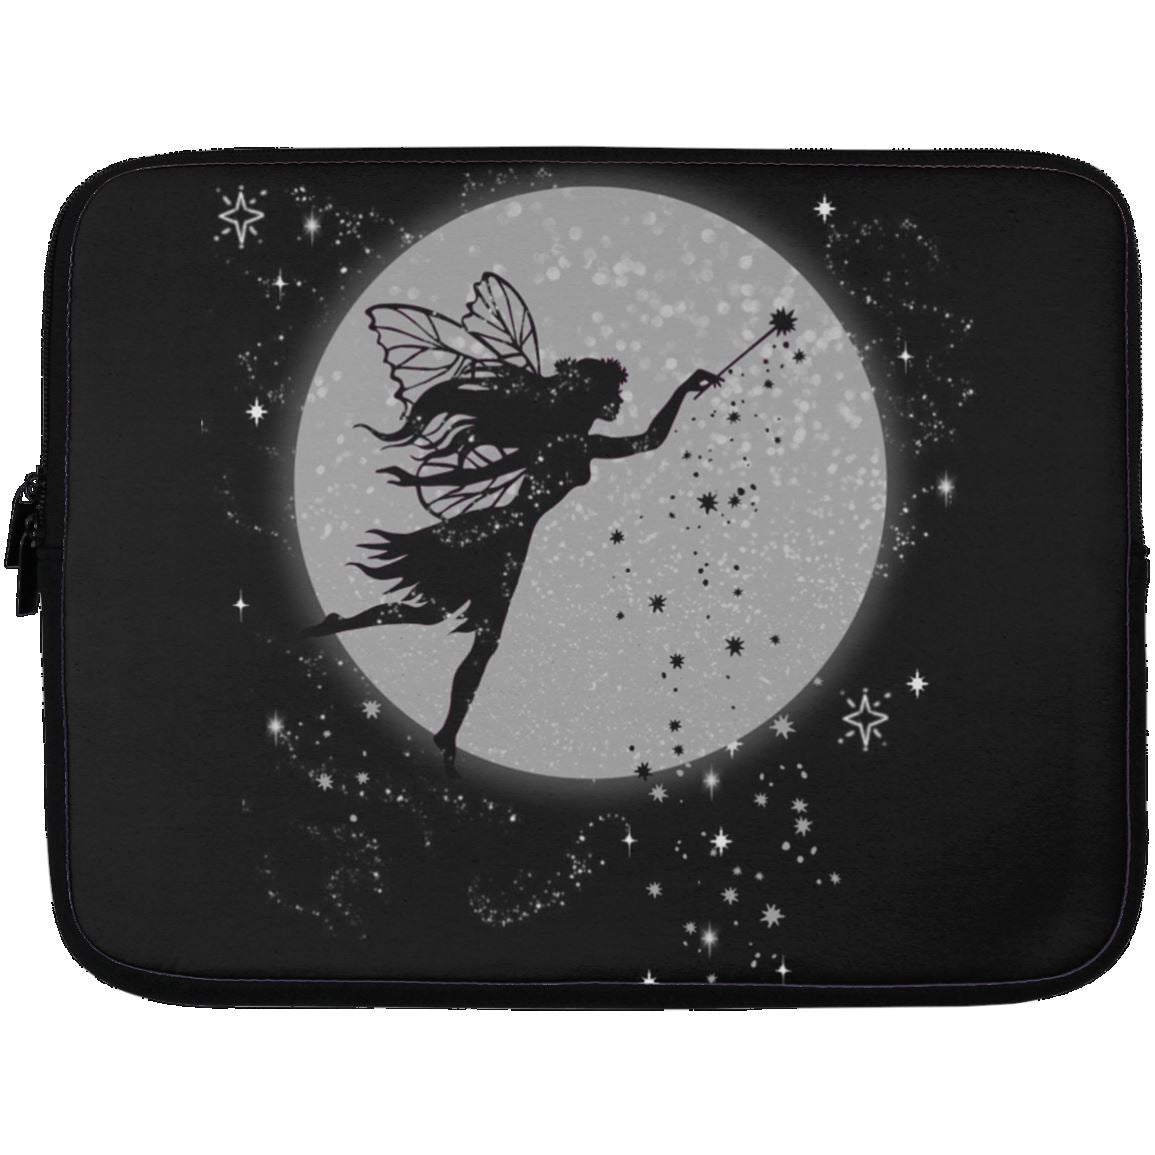 Fairy Moon Laptop Sleeve Apparel Laptop Sleeve - 13 inch Black One Size